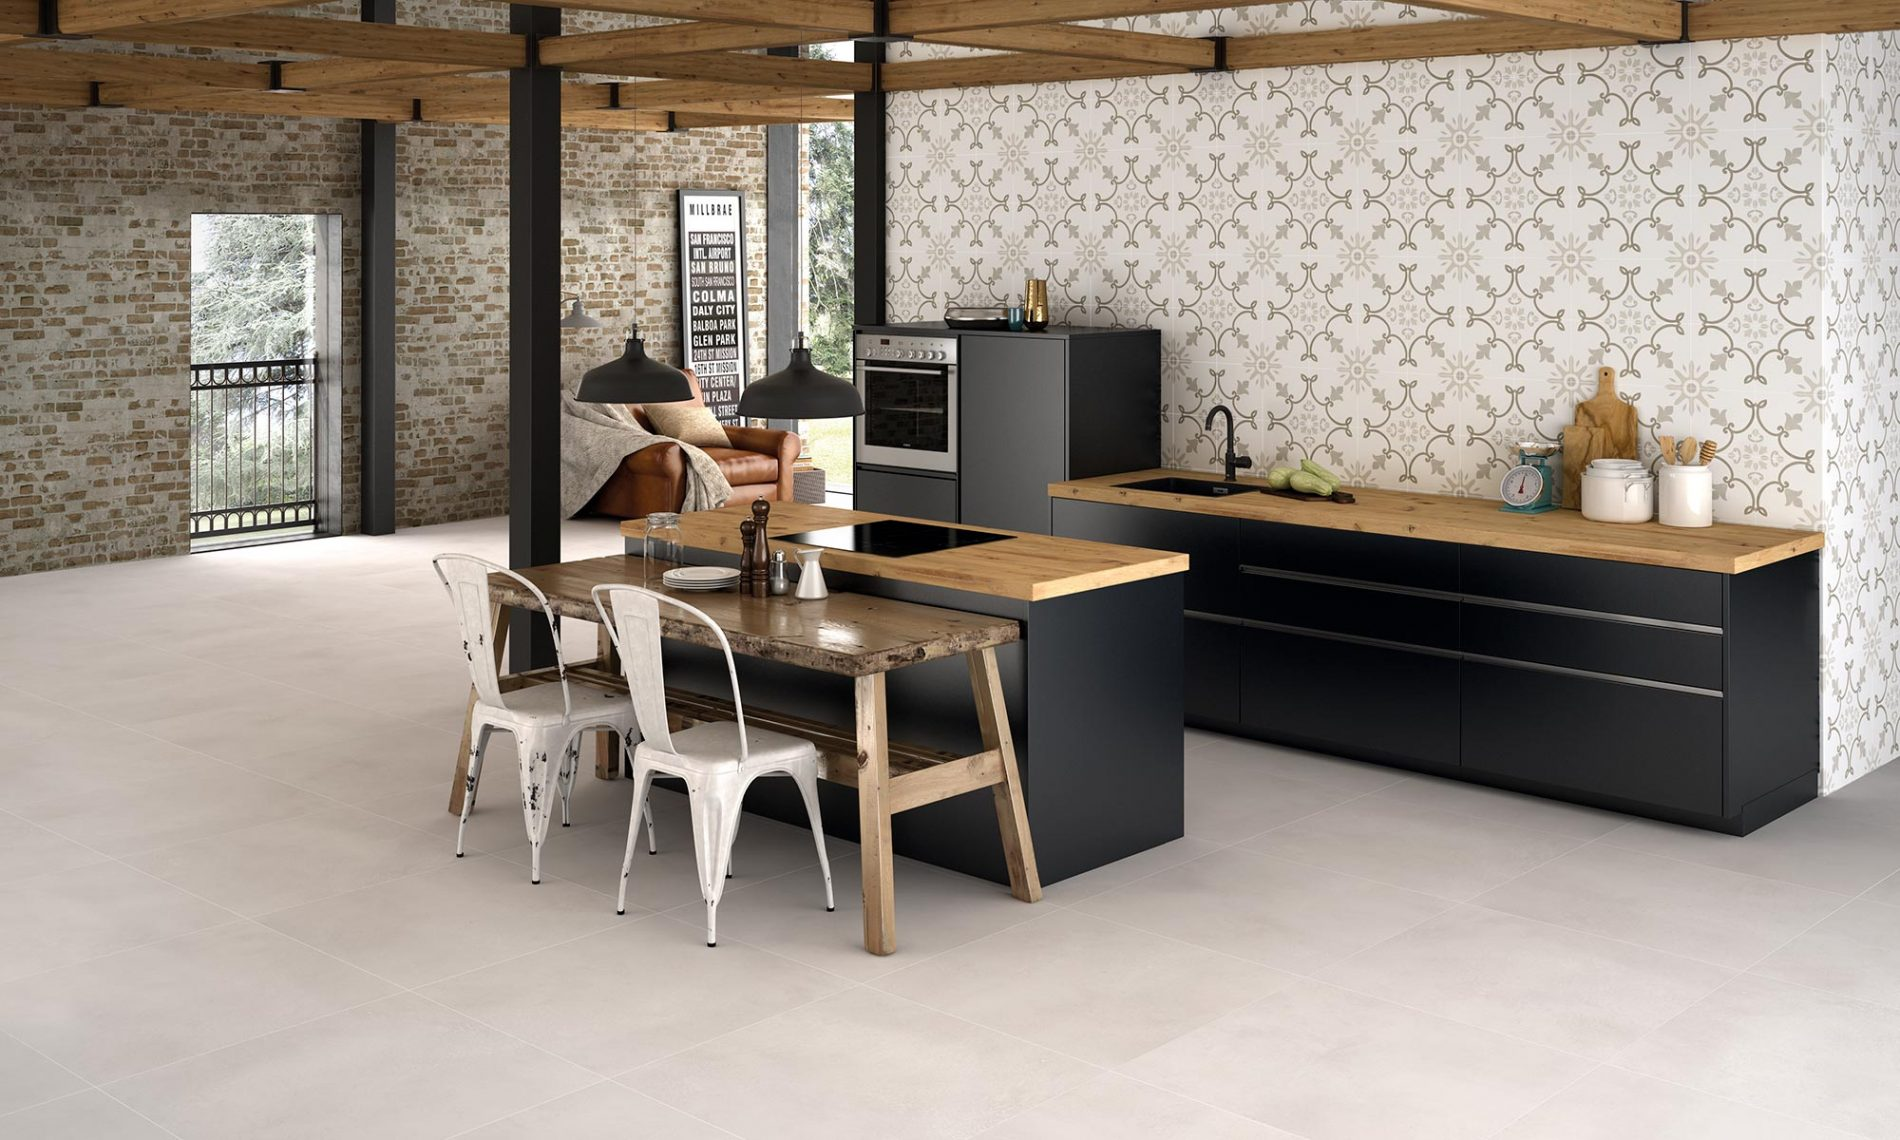 AMB_BOAL_BEIGE_CARNABY_COCINA_WEB